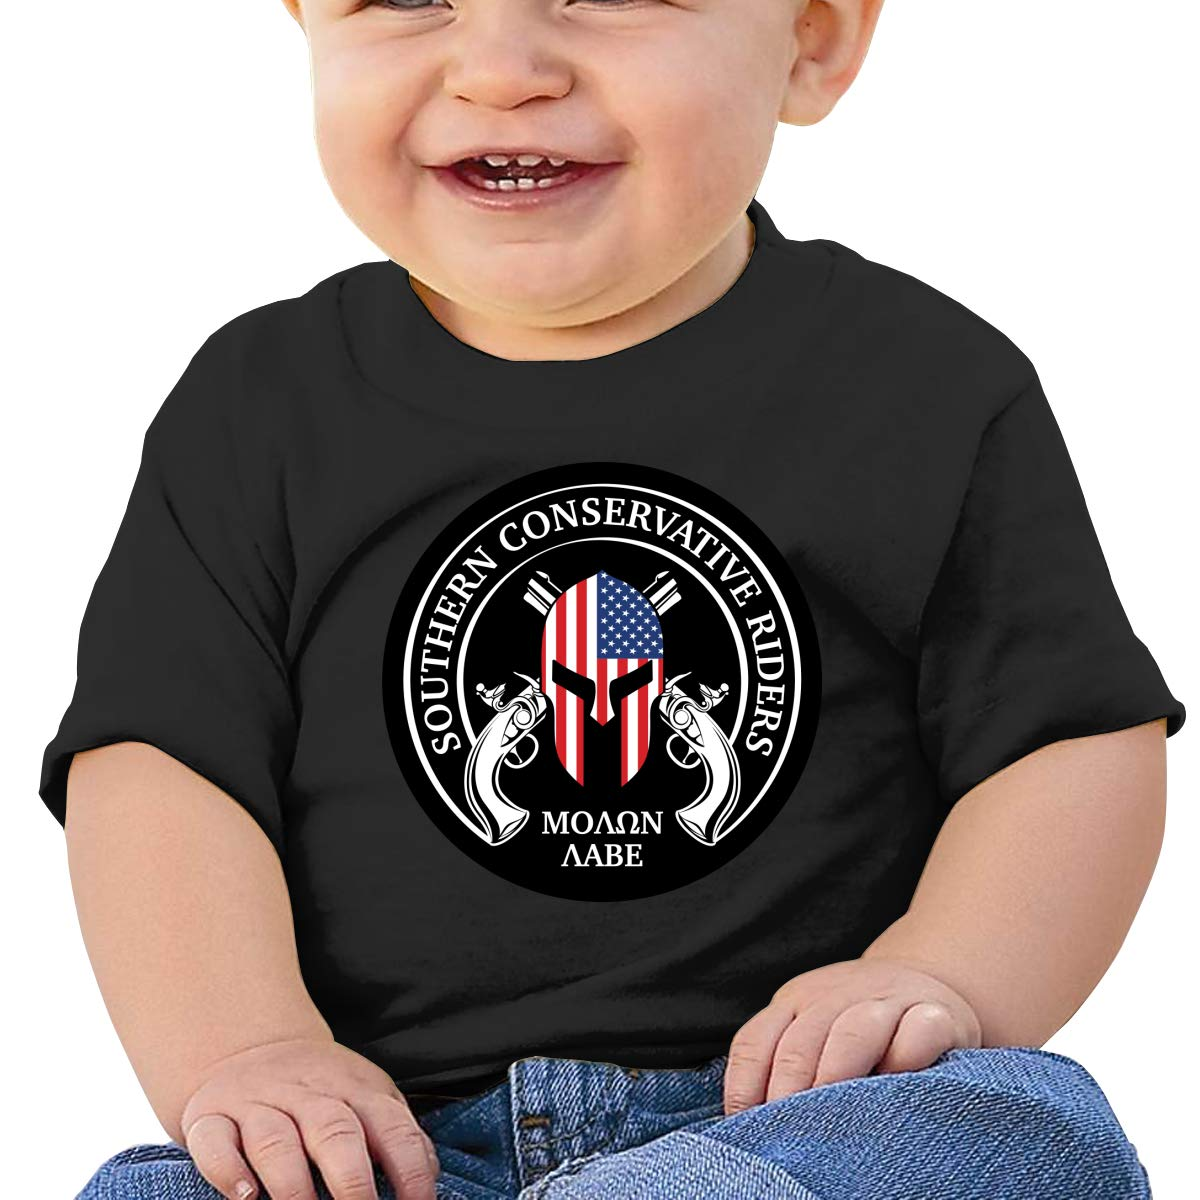 Come and Take Them Molon Labe Baby T-Shirt Kids Cotton T Shirts Comfort Tops for 6M-2T Baby